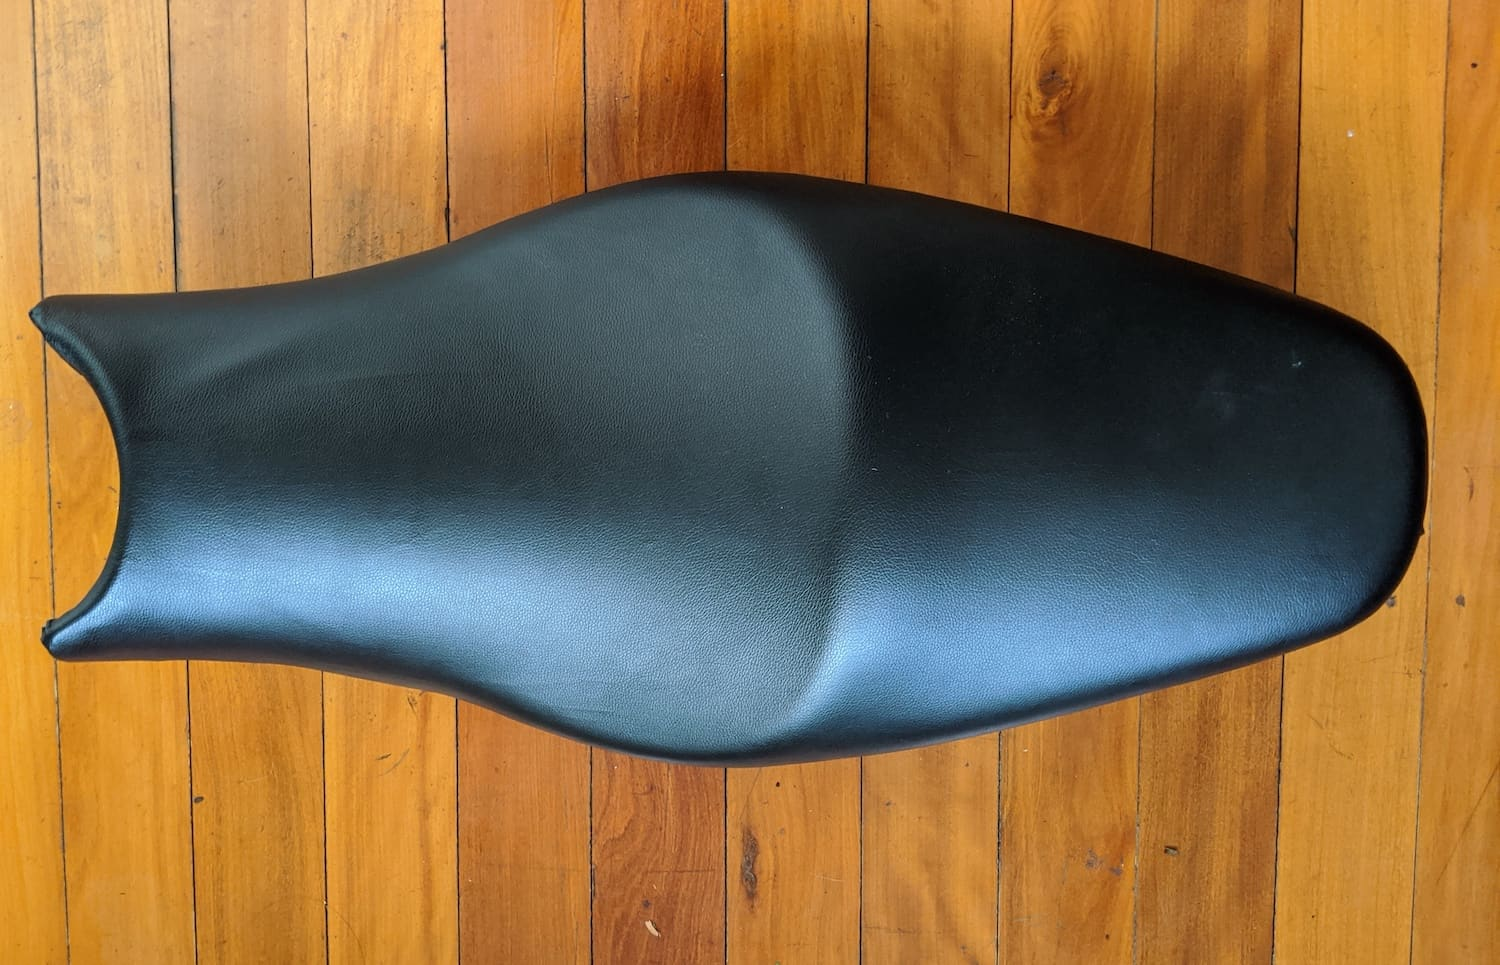 The final re-upholstered motorcycle seat — nearly perfect!